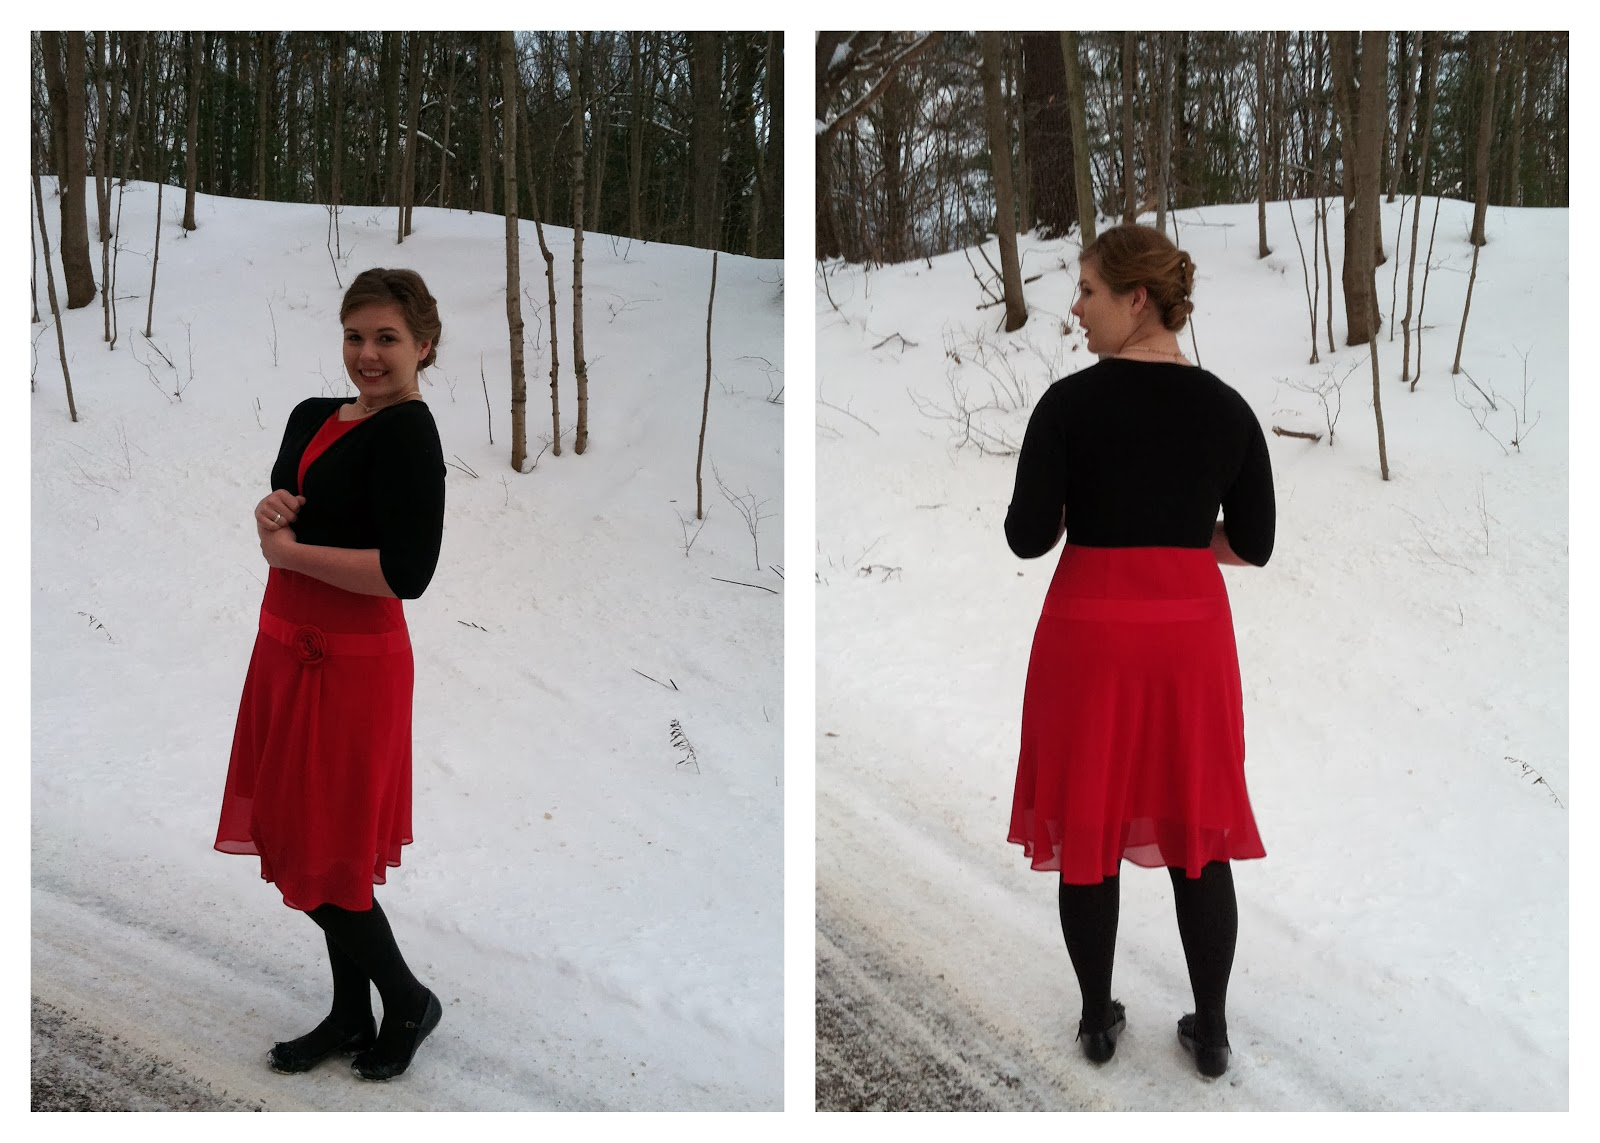 Shoes Thrifted Sale 140 Tights Gifted Slip Vintage Drop Waist 3 Dress 7 Shrug 4 Necklace